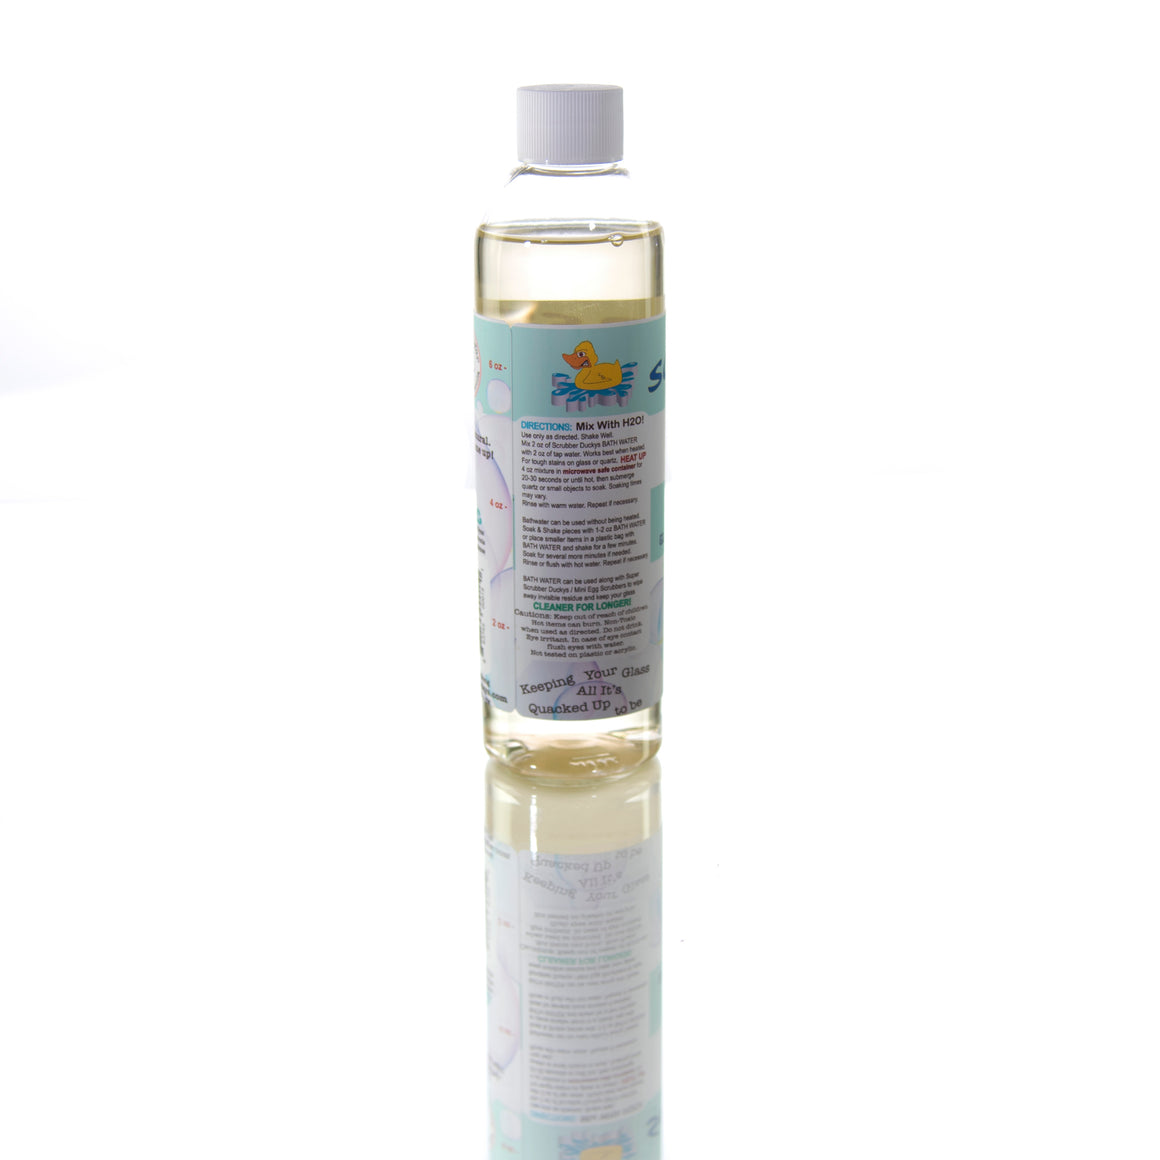 Scrubber Ducky - Concentrated Quartz Cleaner